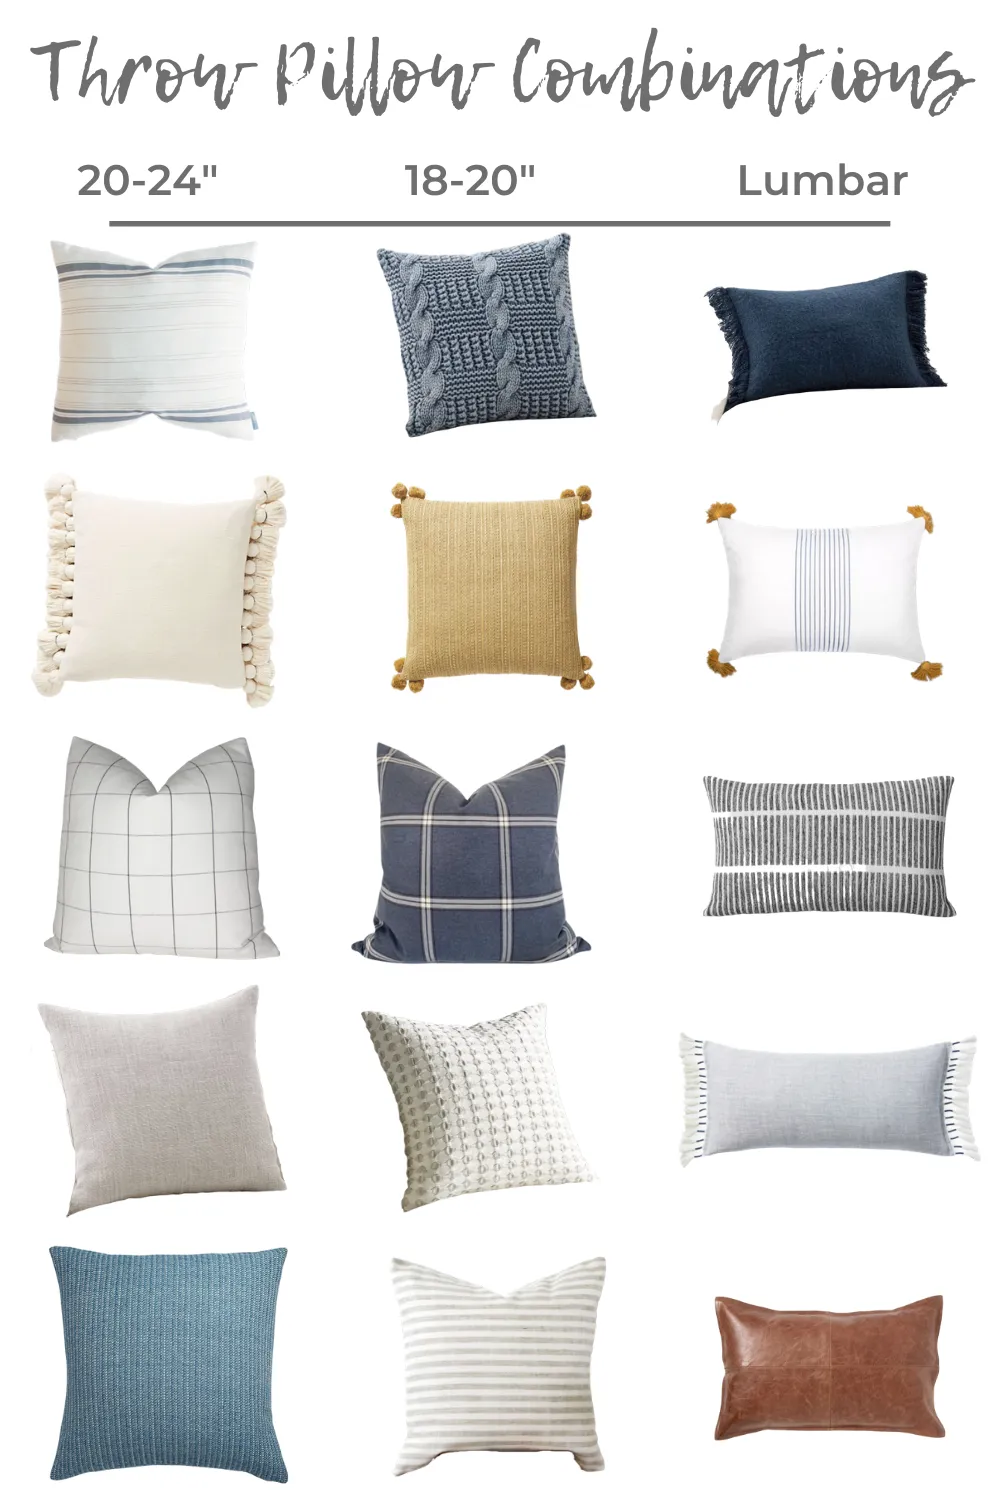 5 Throw Pillow Combinations In 2020 Throw Pillow Combinations Throw Pillows White Couch Throw Pillows Living Room